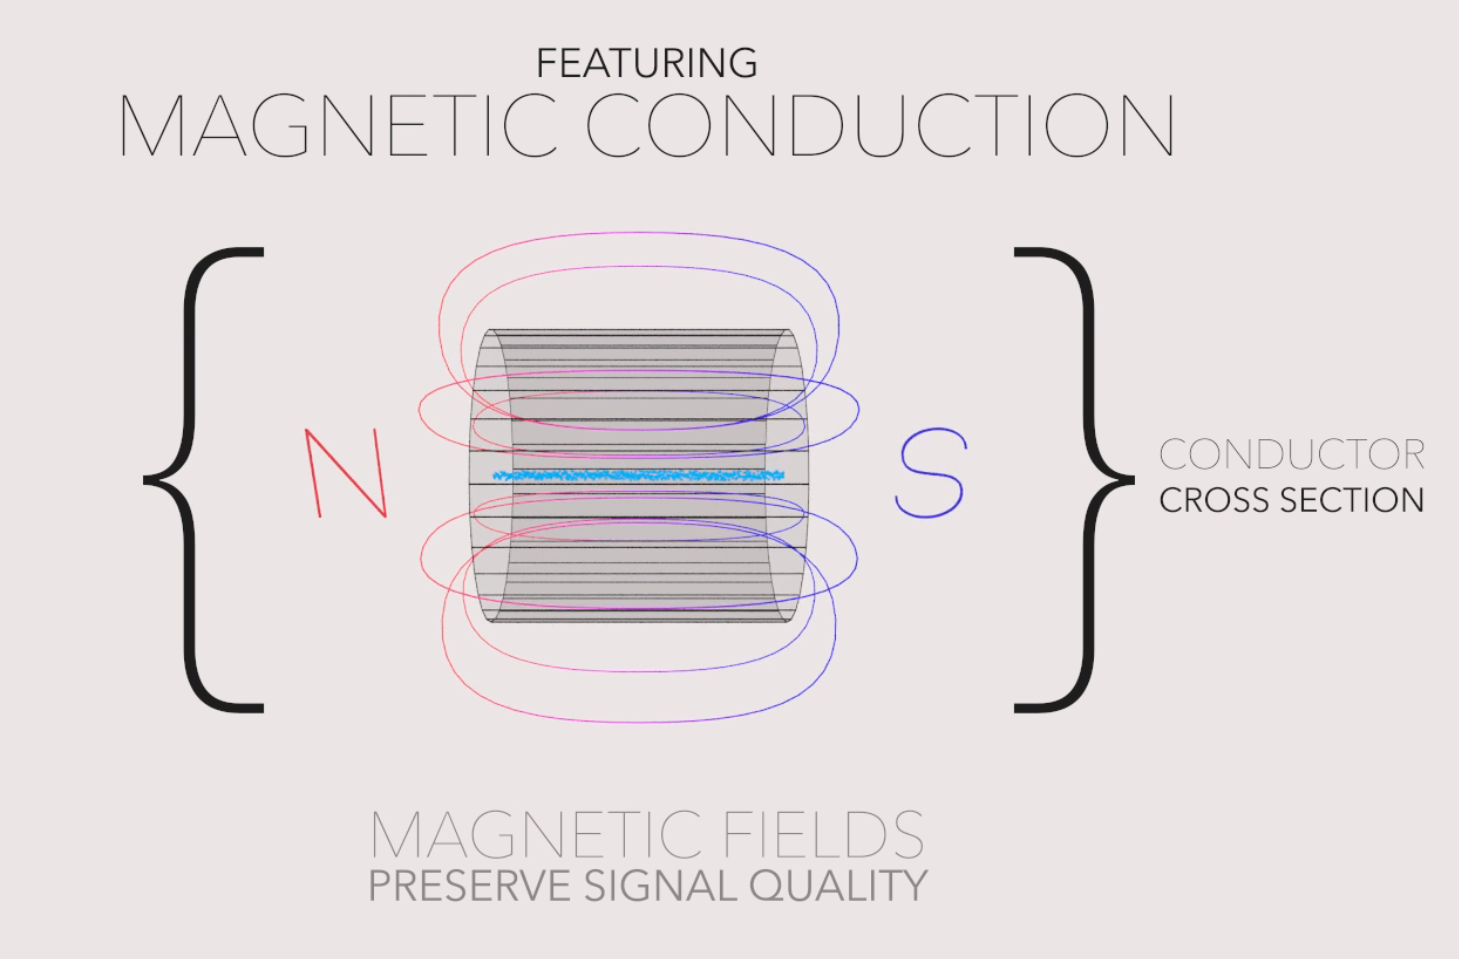 magnetic conduction